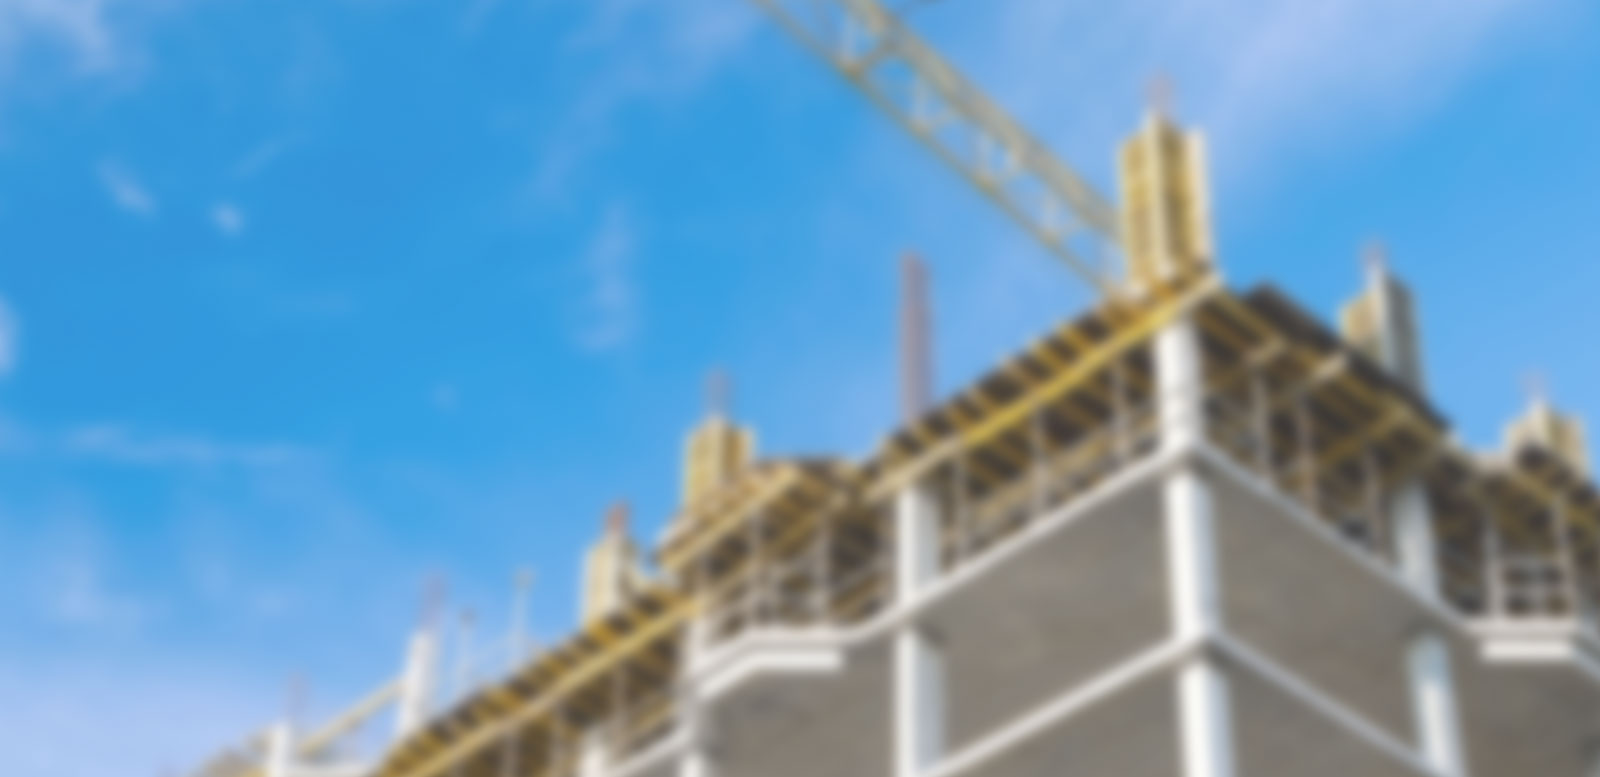 General Contractor and Construction Manager operating throughout Western Canada